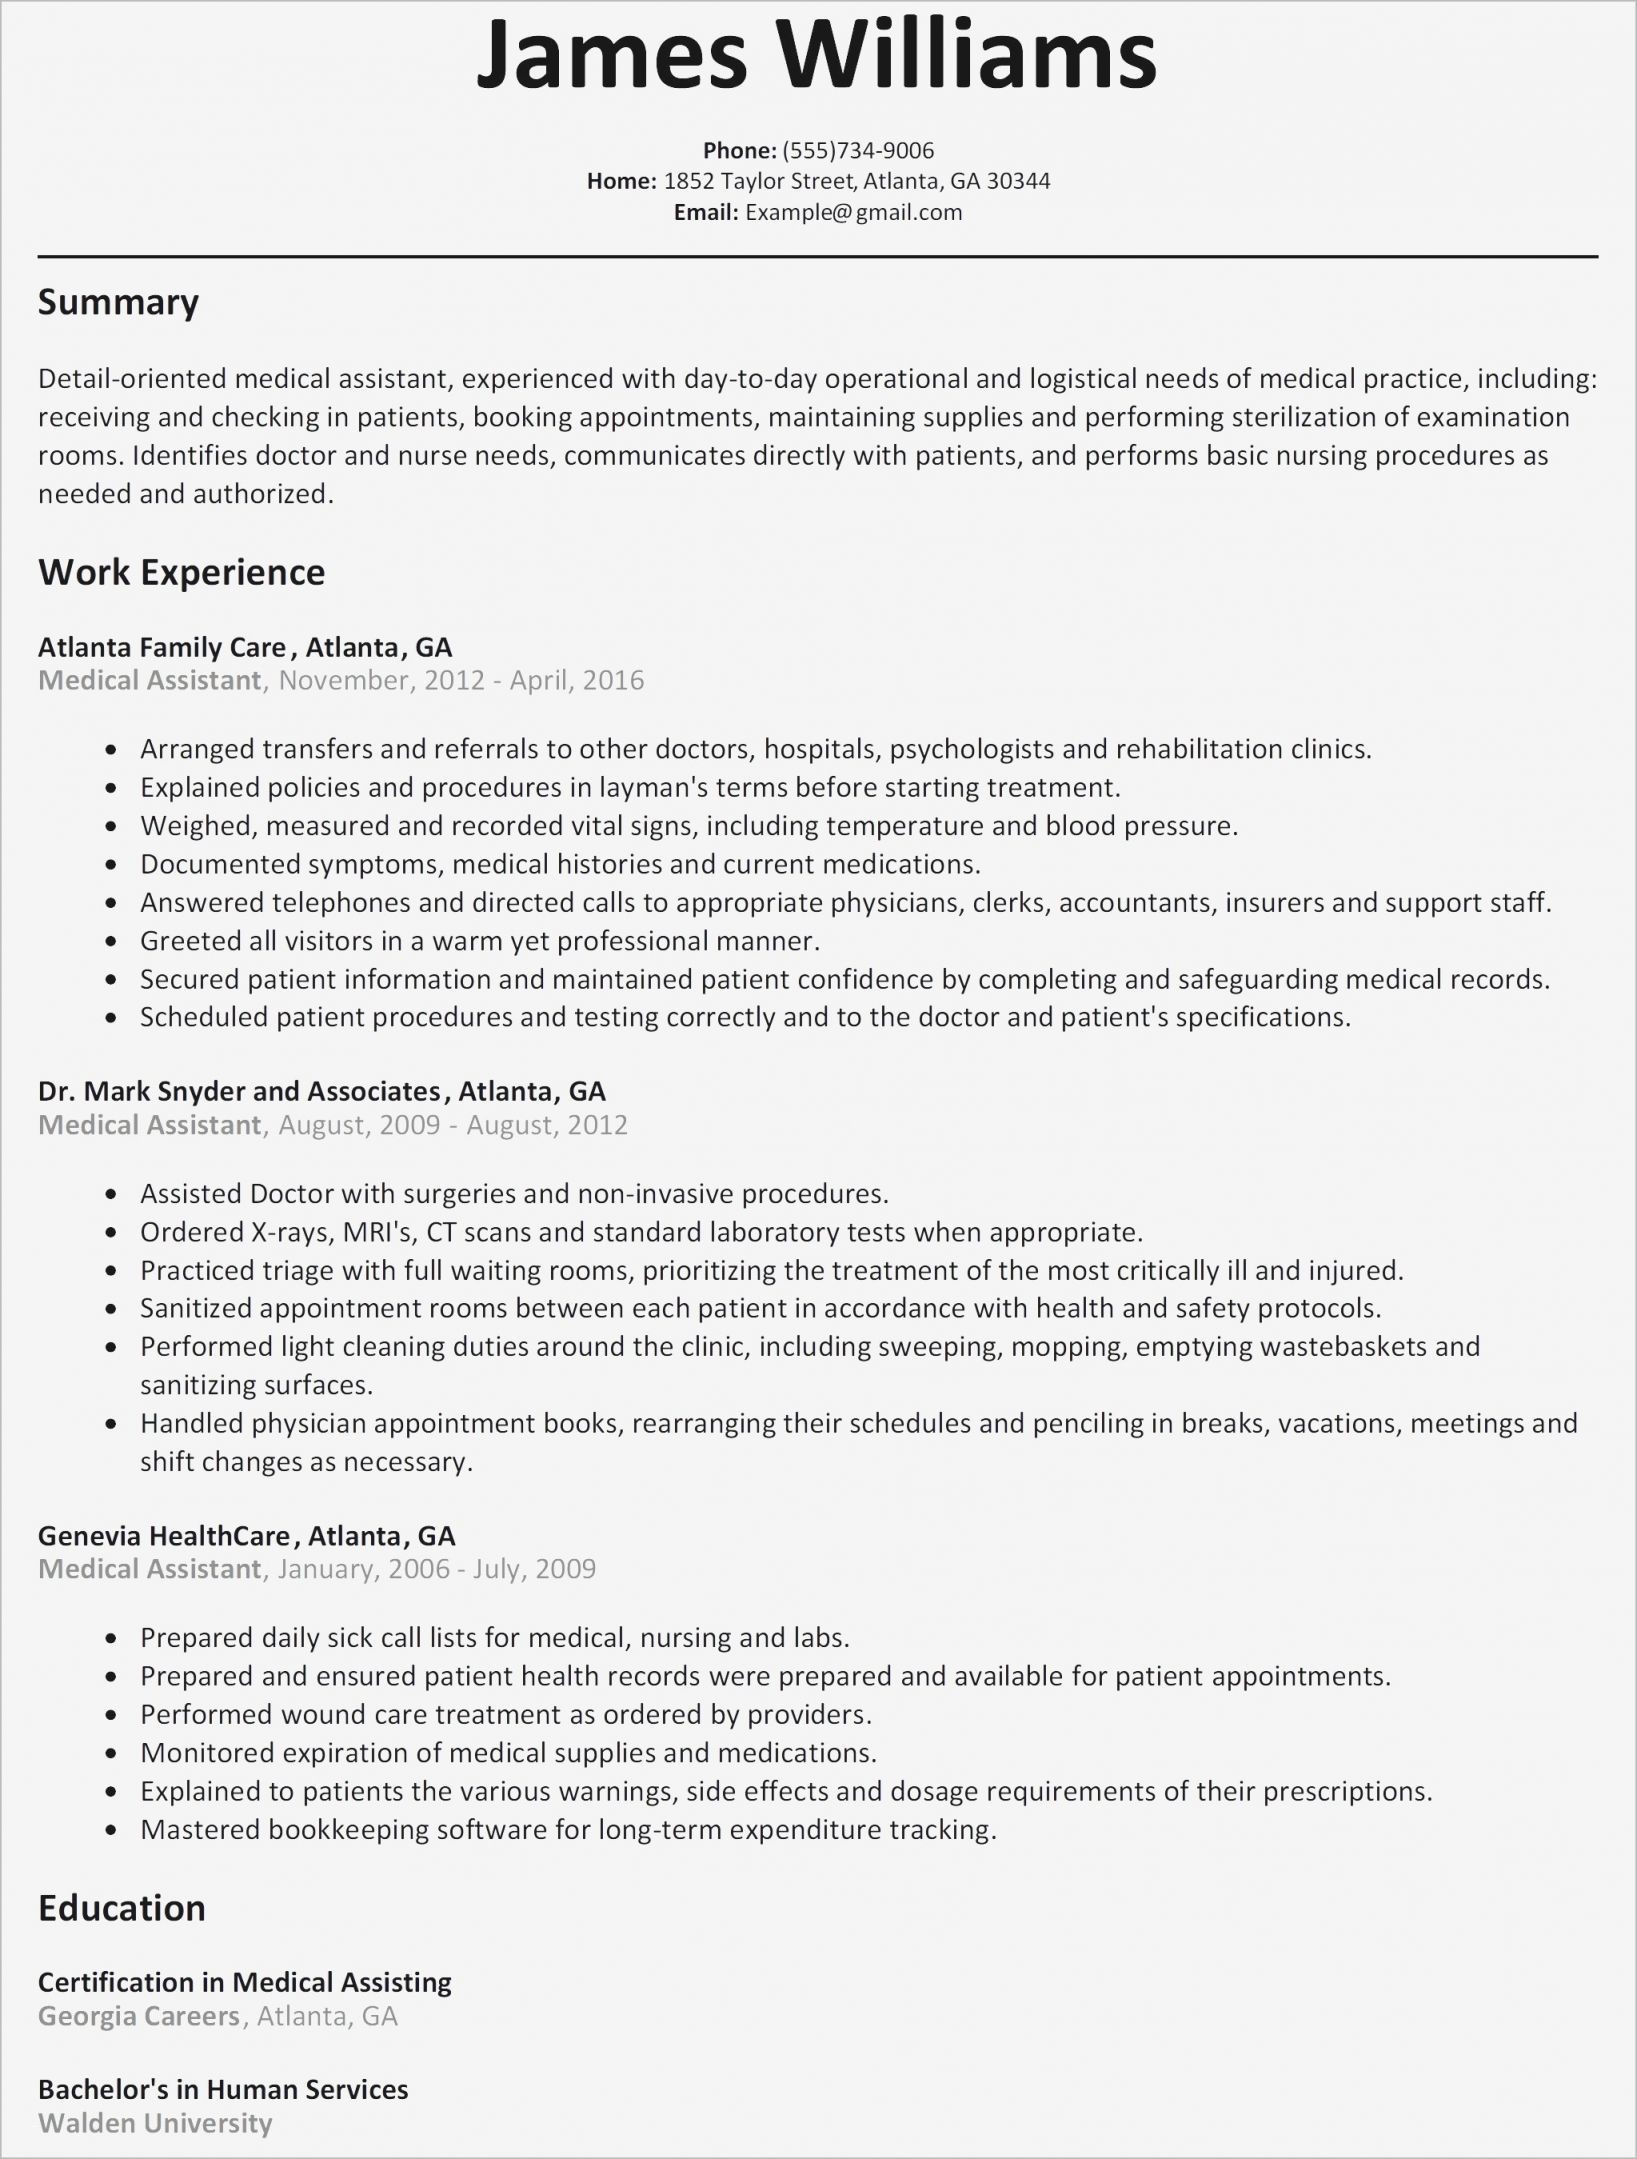 Resume Template for Teacher assistant - 17 Resume Examples for Teacher assistant